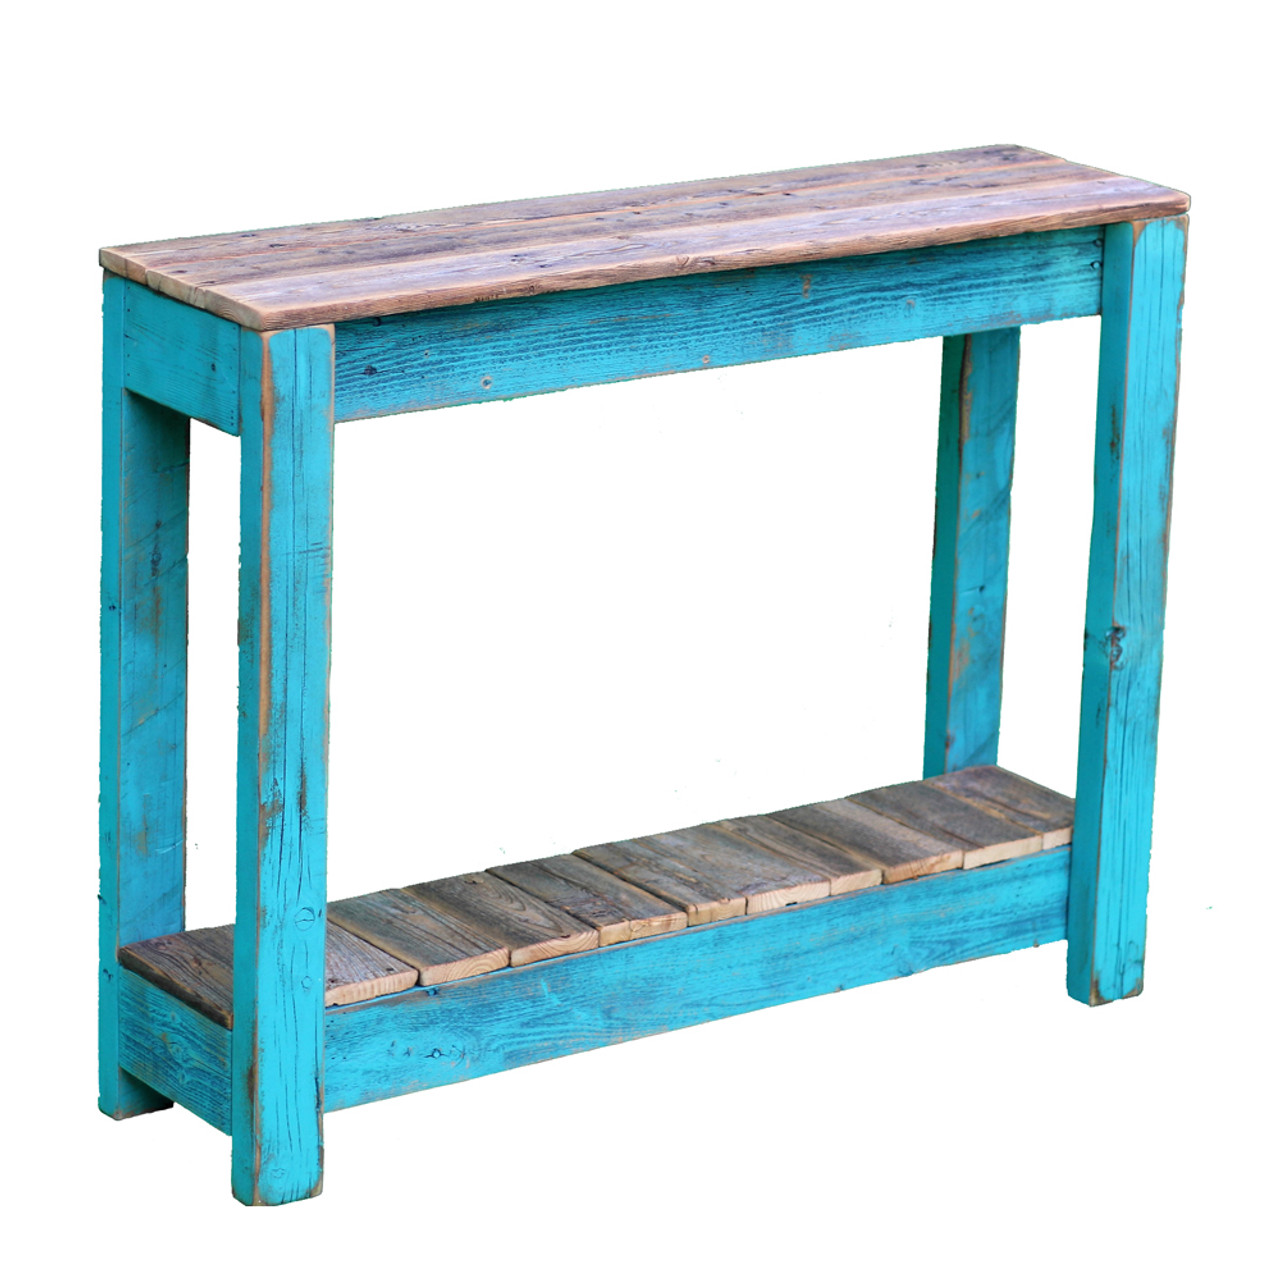 Doug & Cristy Designs Rustic 36 Inch Console Table